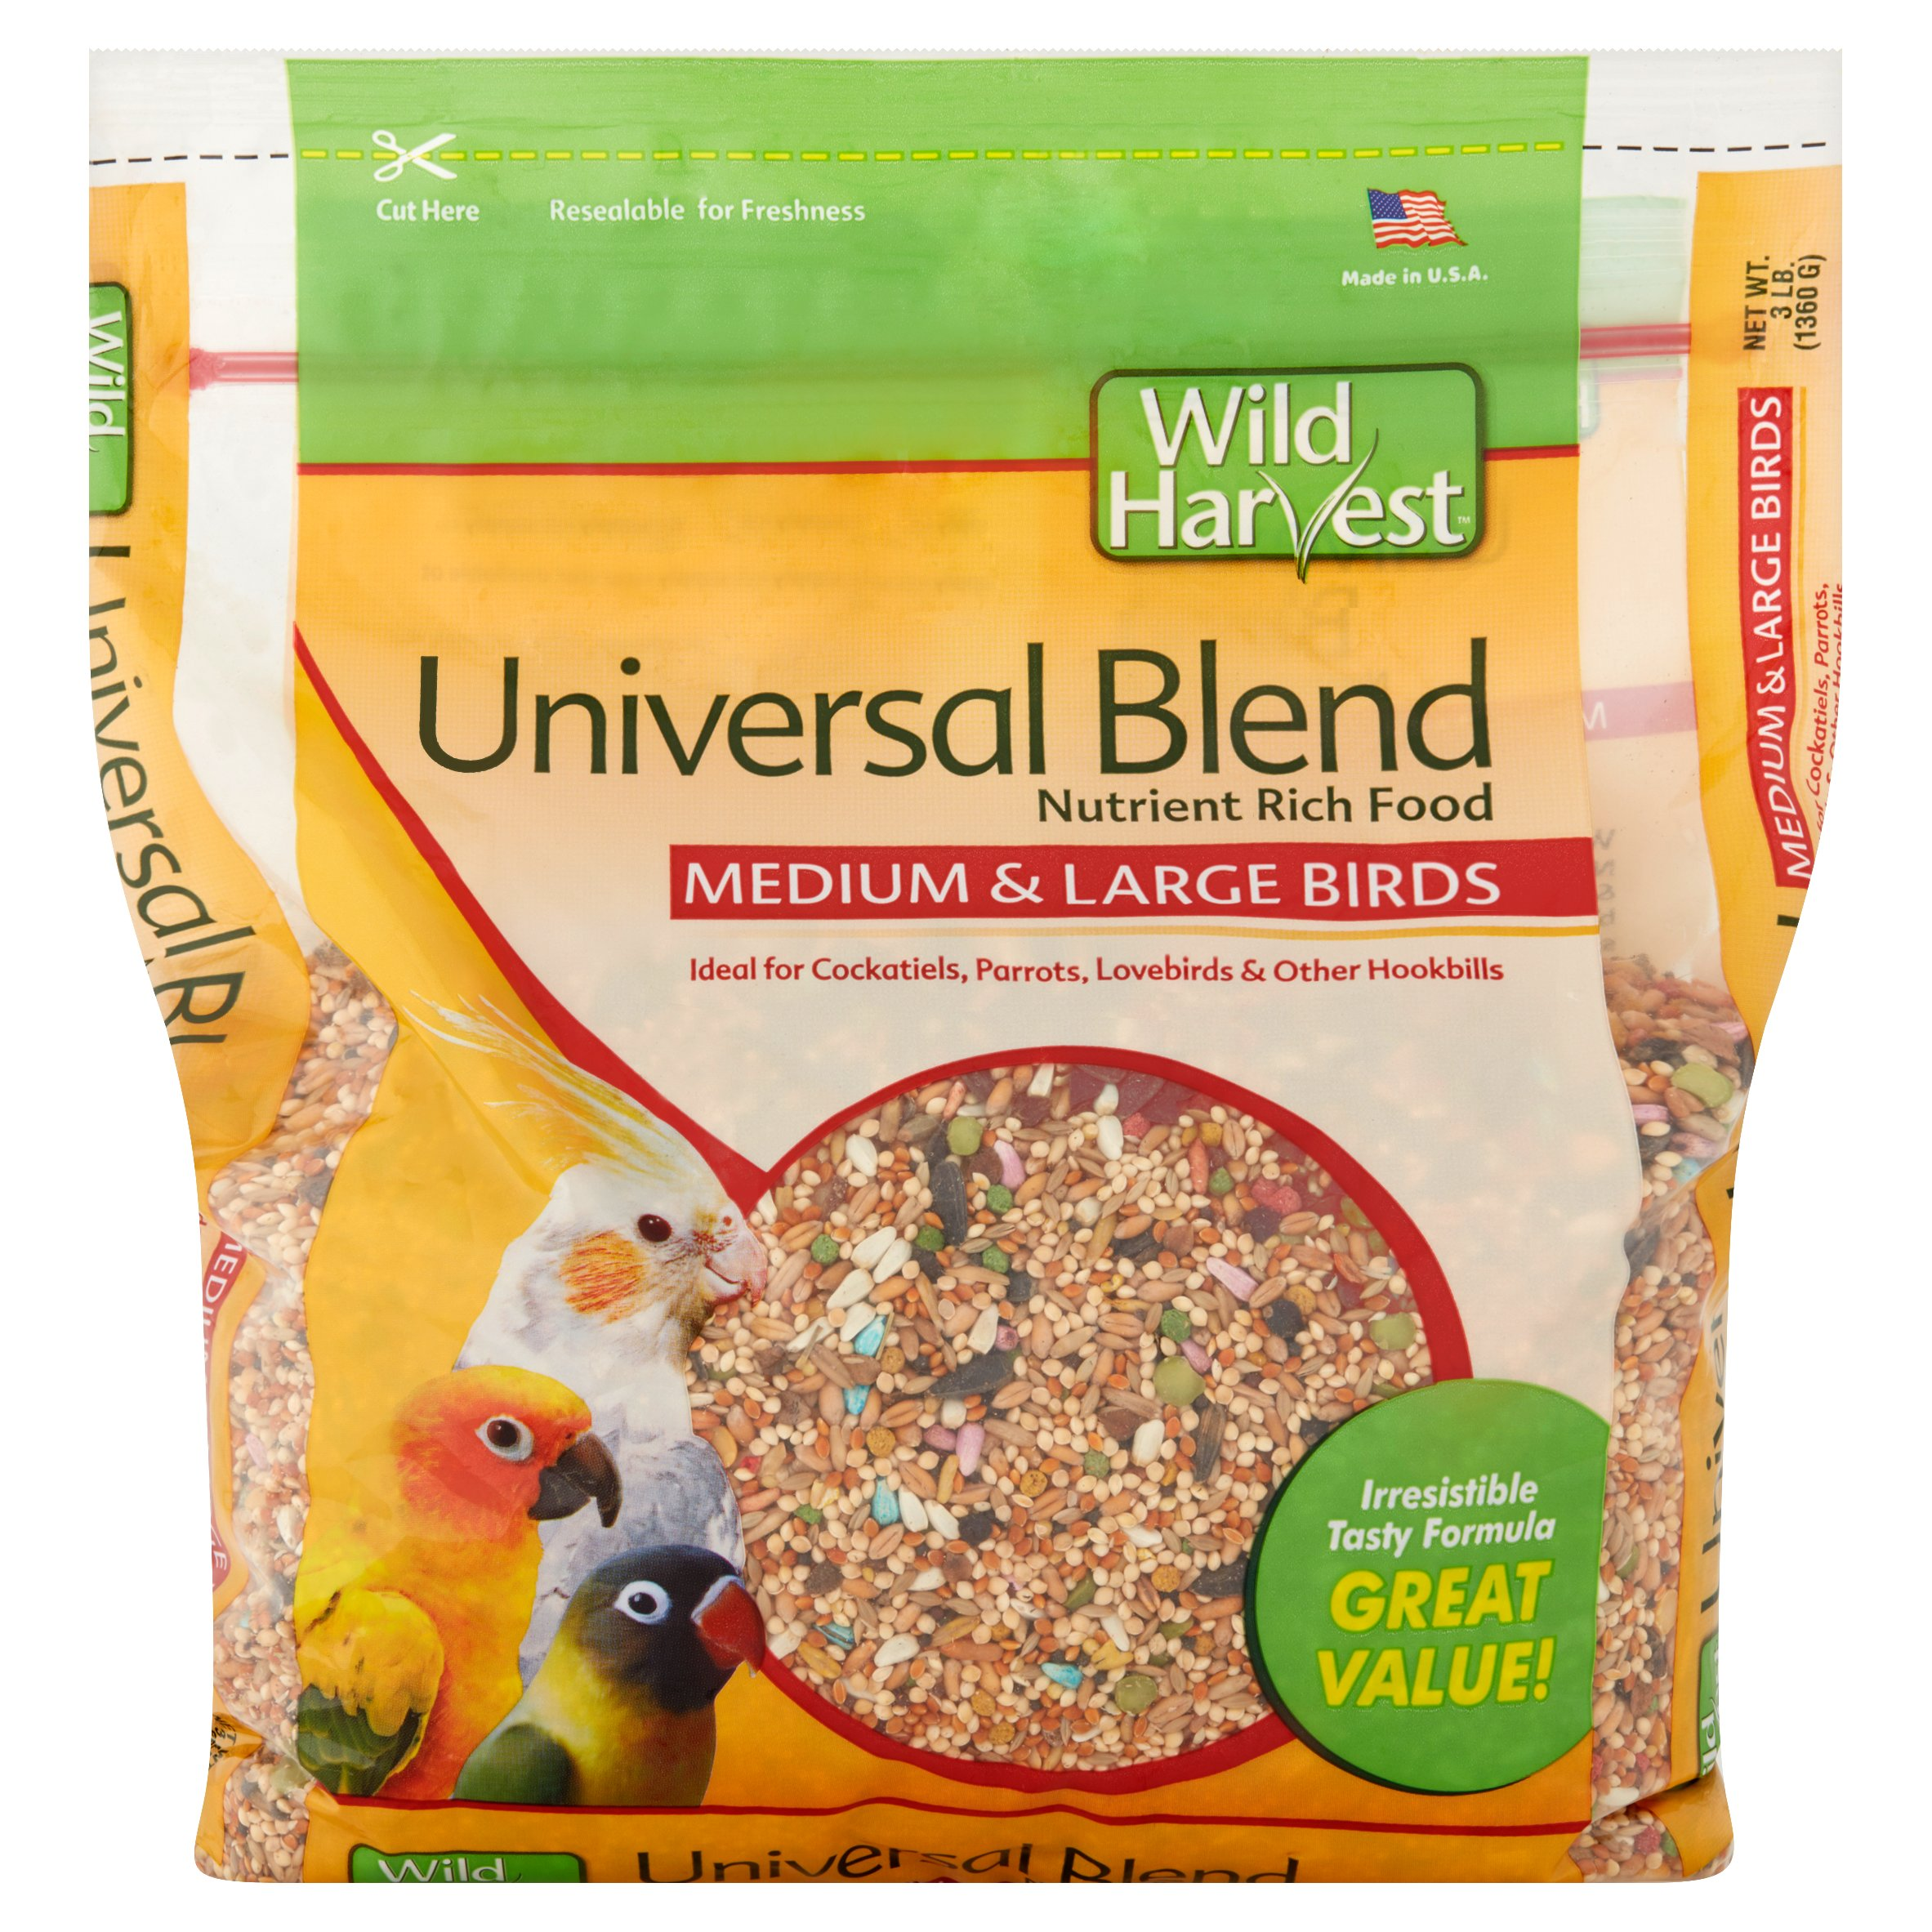 Wild Harvest Universal Blend Premium Medium & Large Bird Seed, 3 lb